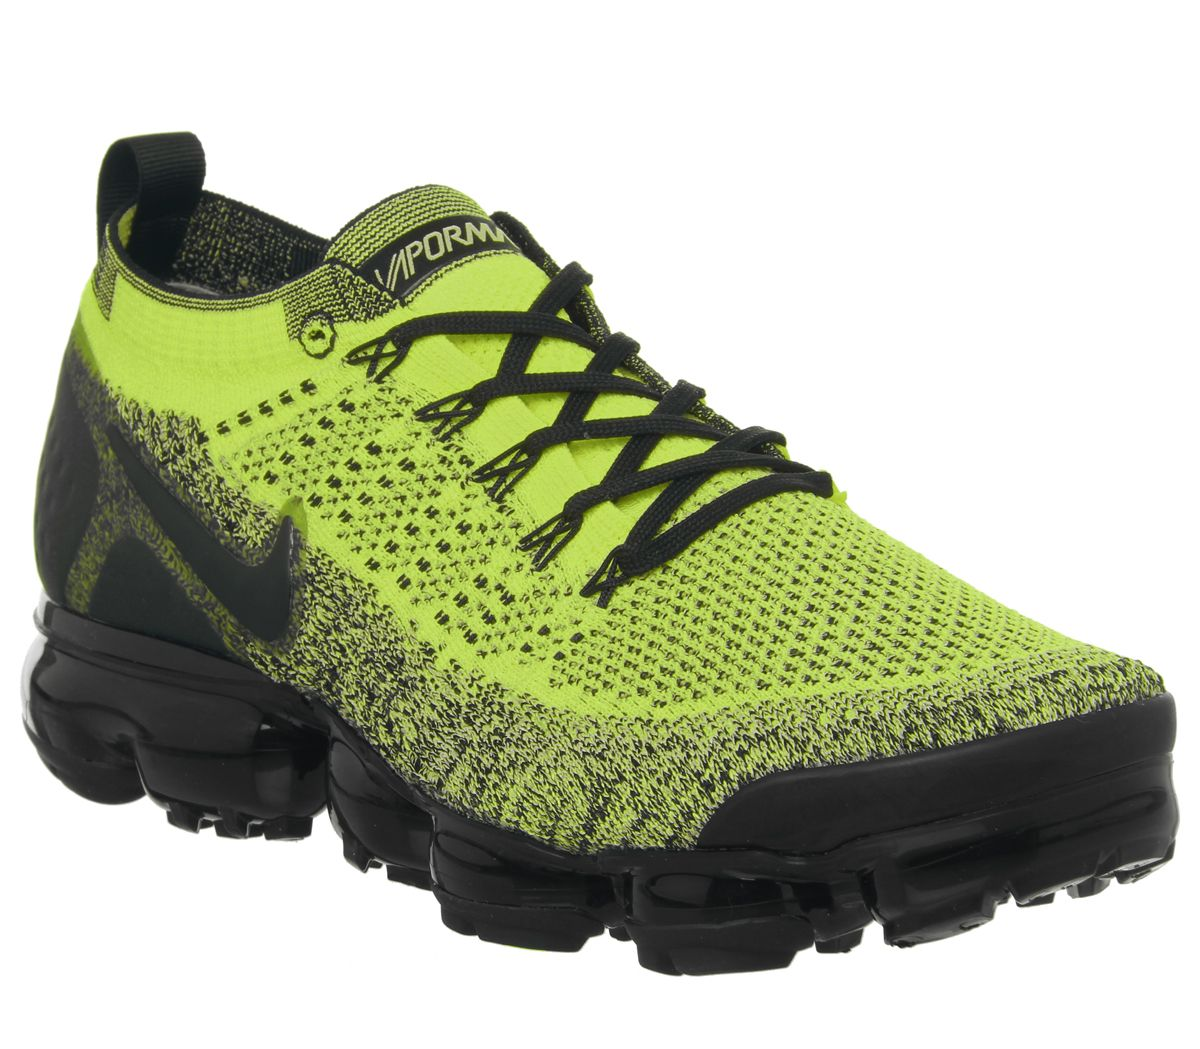 pretty nice 241e5 dec80 Nike Vapormax Air Vapormax Flyknit 2 Trainers Volt Black ...